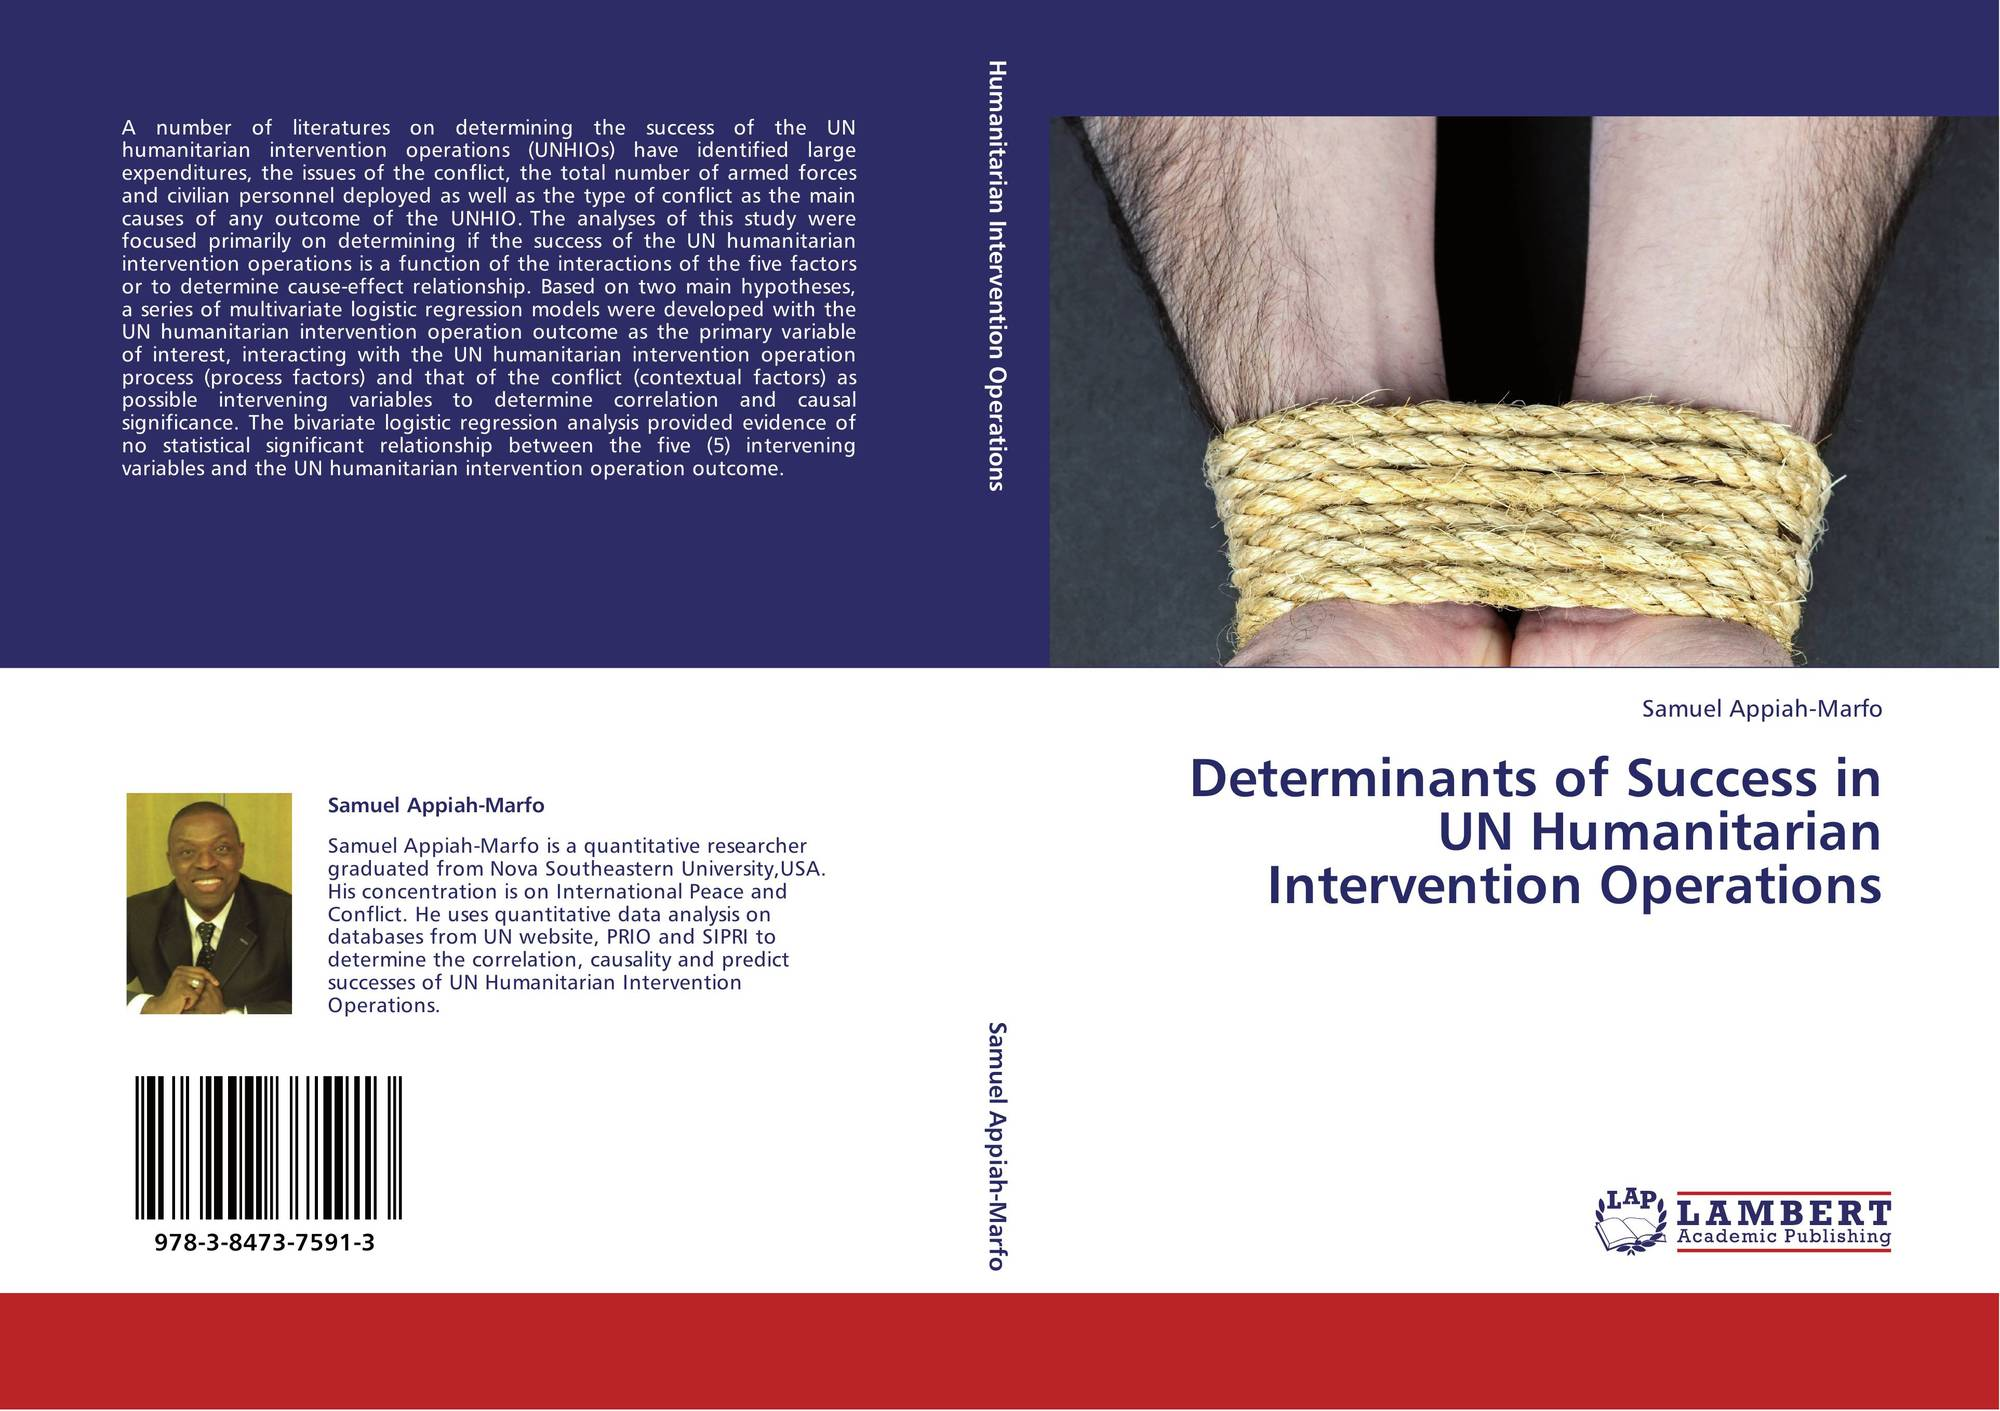 international relations relating to humanitarian intervention essay The issue of humanitarian intervention has generated one of the most heated debates in international relations over the past decade, for both theorists and practitioners.